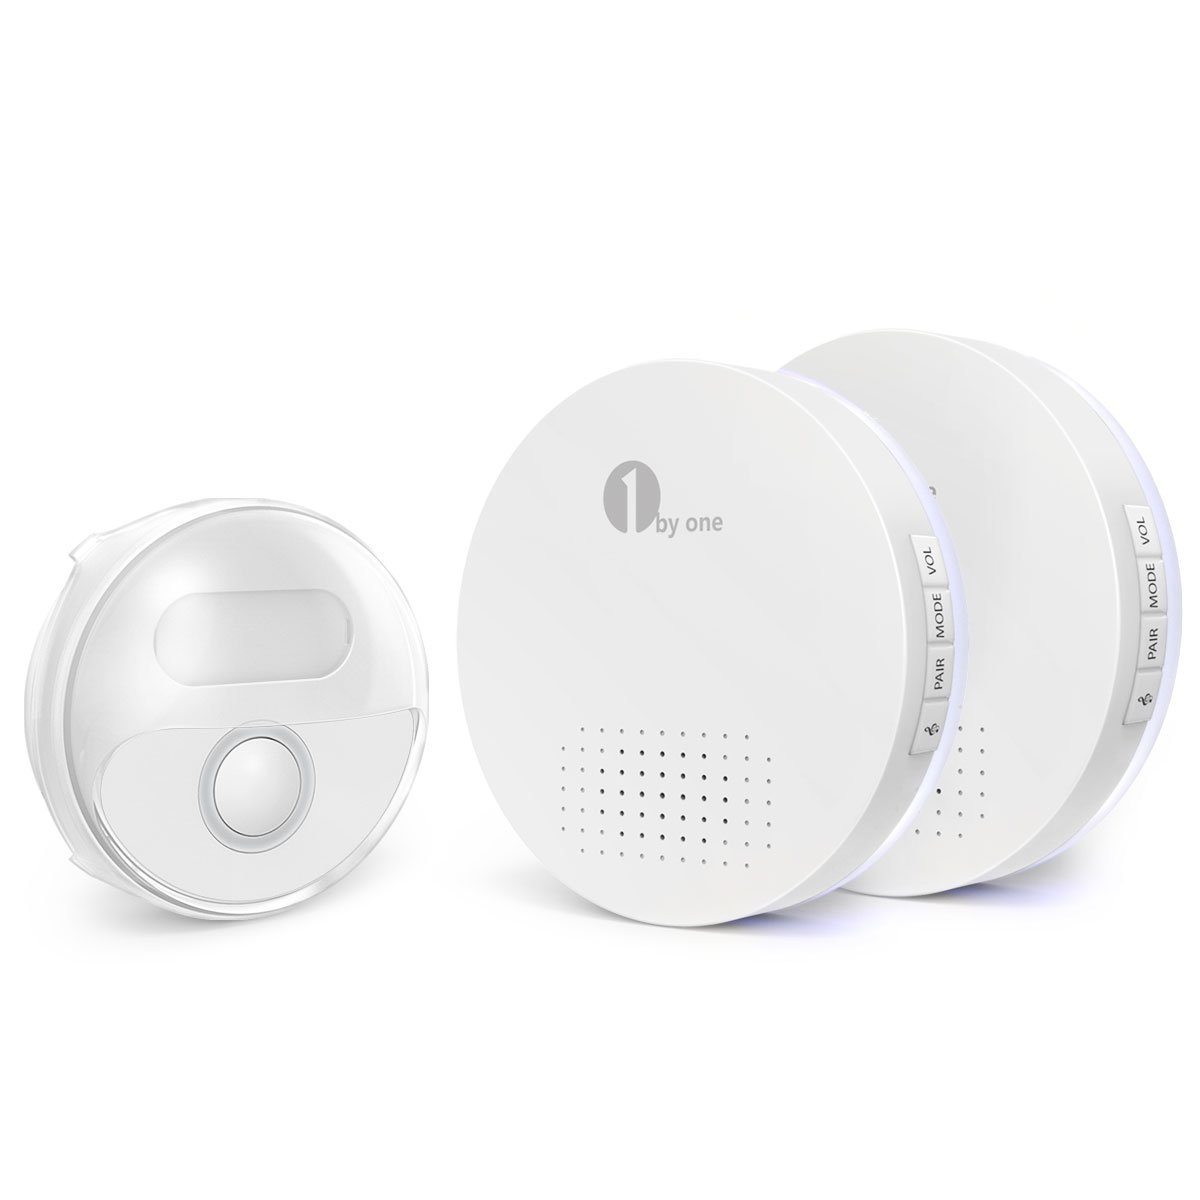 1byone Wireless Doorbell, Waterproof Door Chime Kit Operating at Over 500 Feet with LED Flash Battery-operated 2 Receivers and 1 Push Button , 36 Chimes, 6 Levels Volume, White